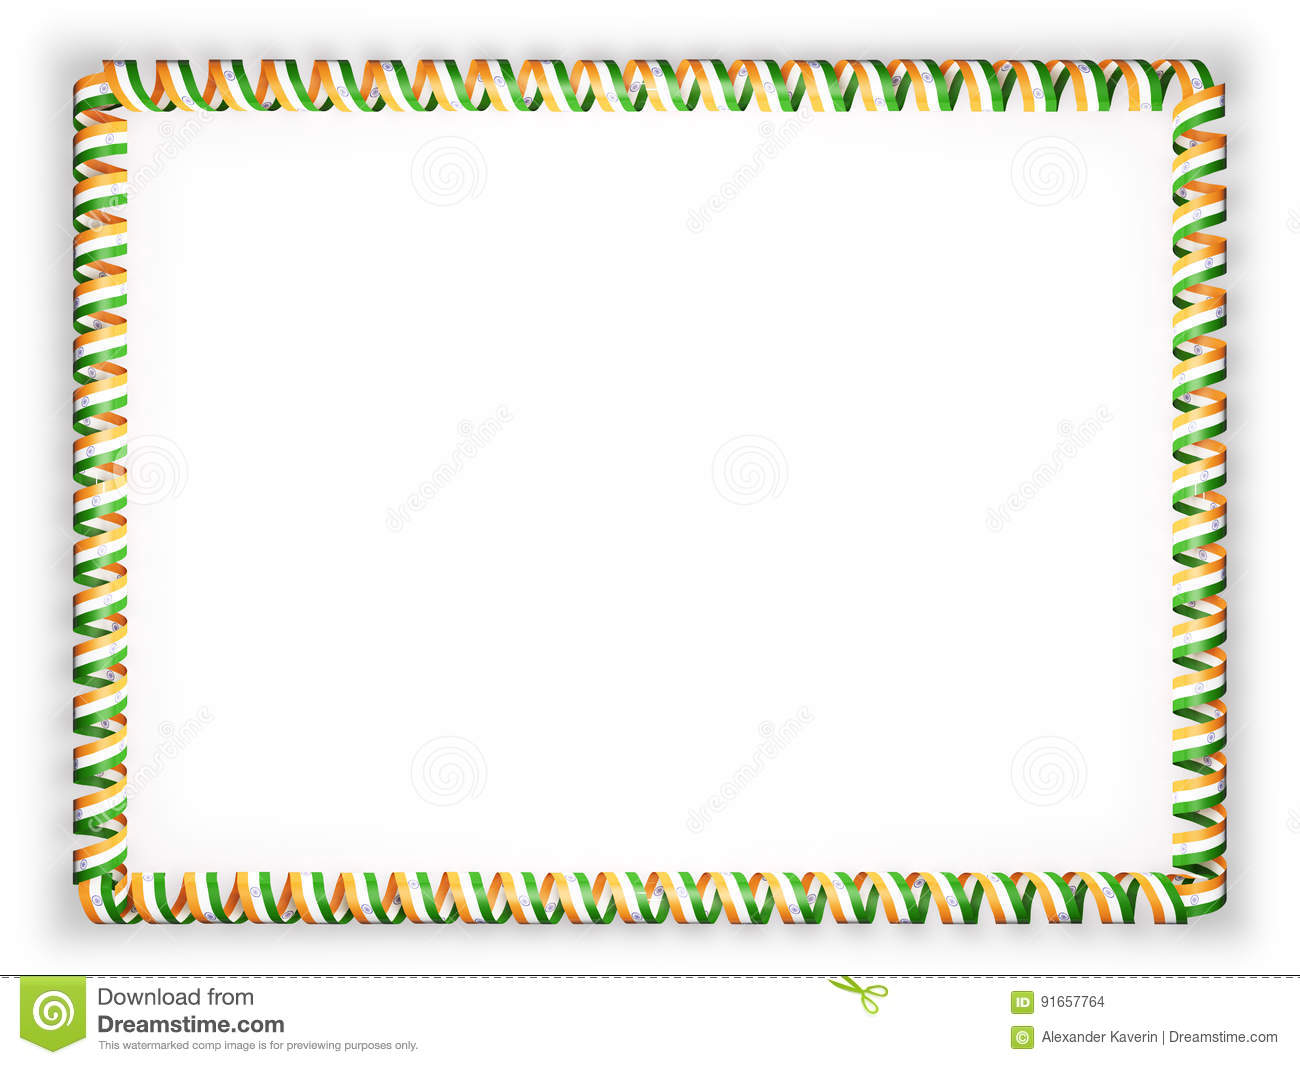 Frame And Border Of Ribbon With The India Flag. 3d Illustration.